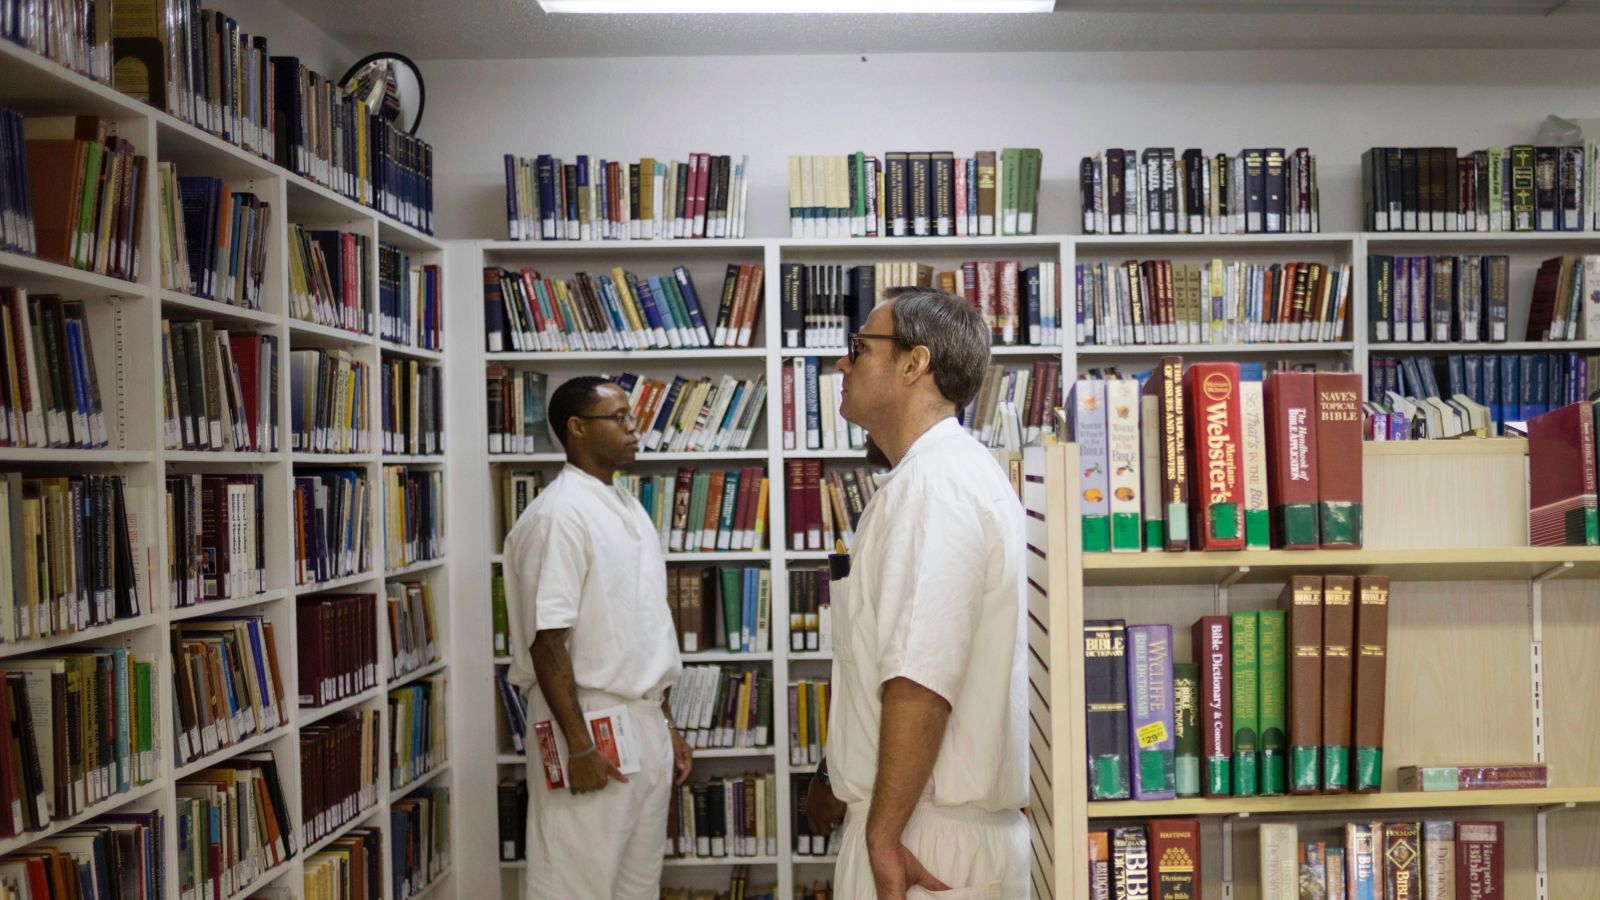 11 Frequently Requested Books In American Prisons